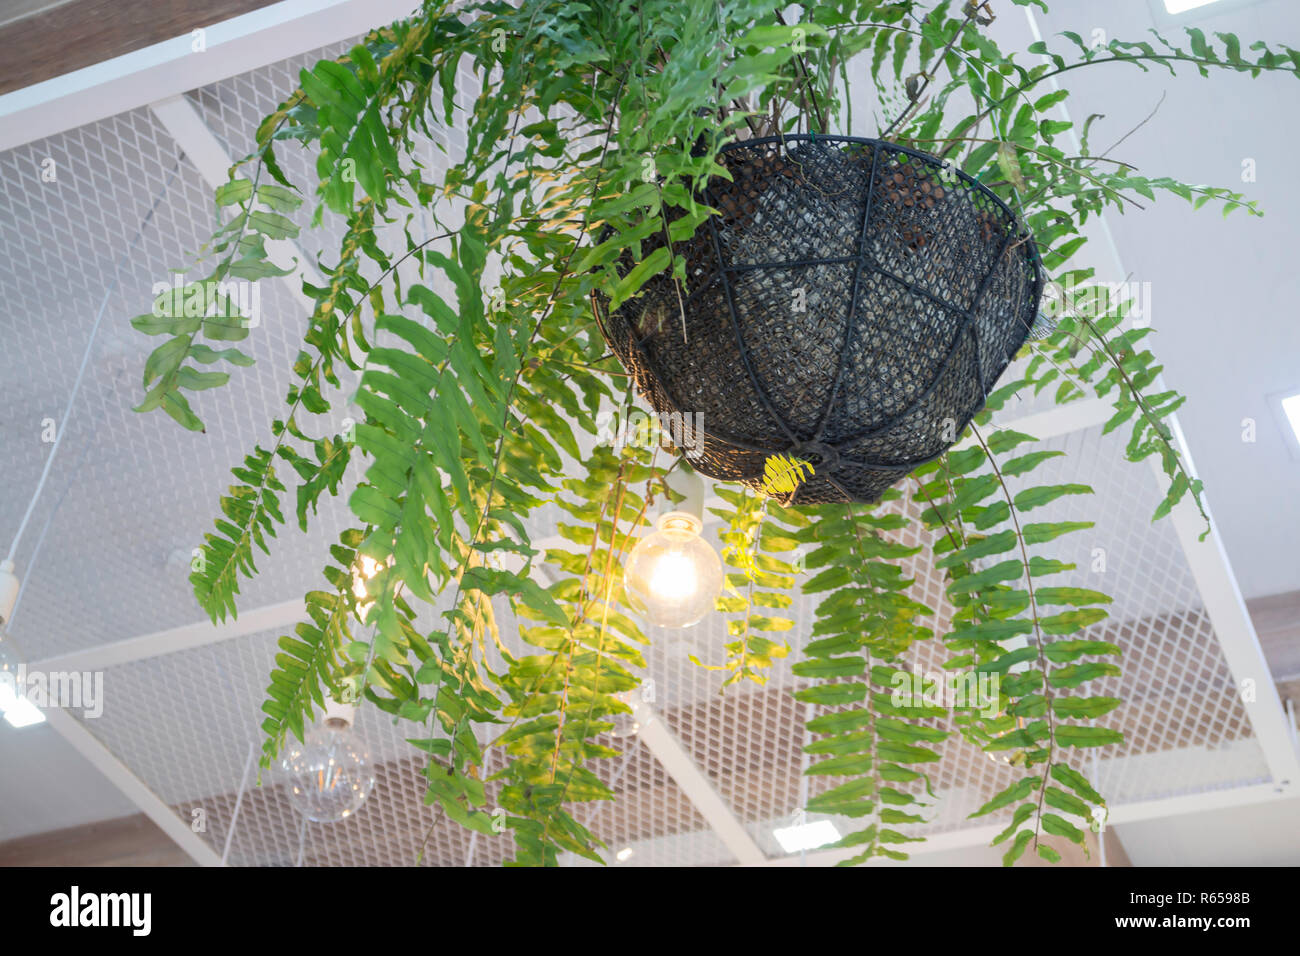 Fern In Plant Pot Hanging On Ceiling Stock Photo 227539771 Alamy